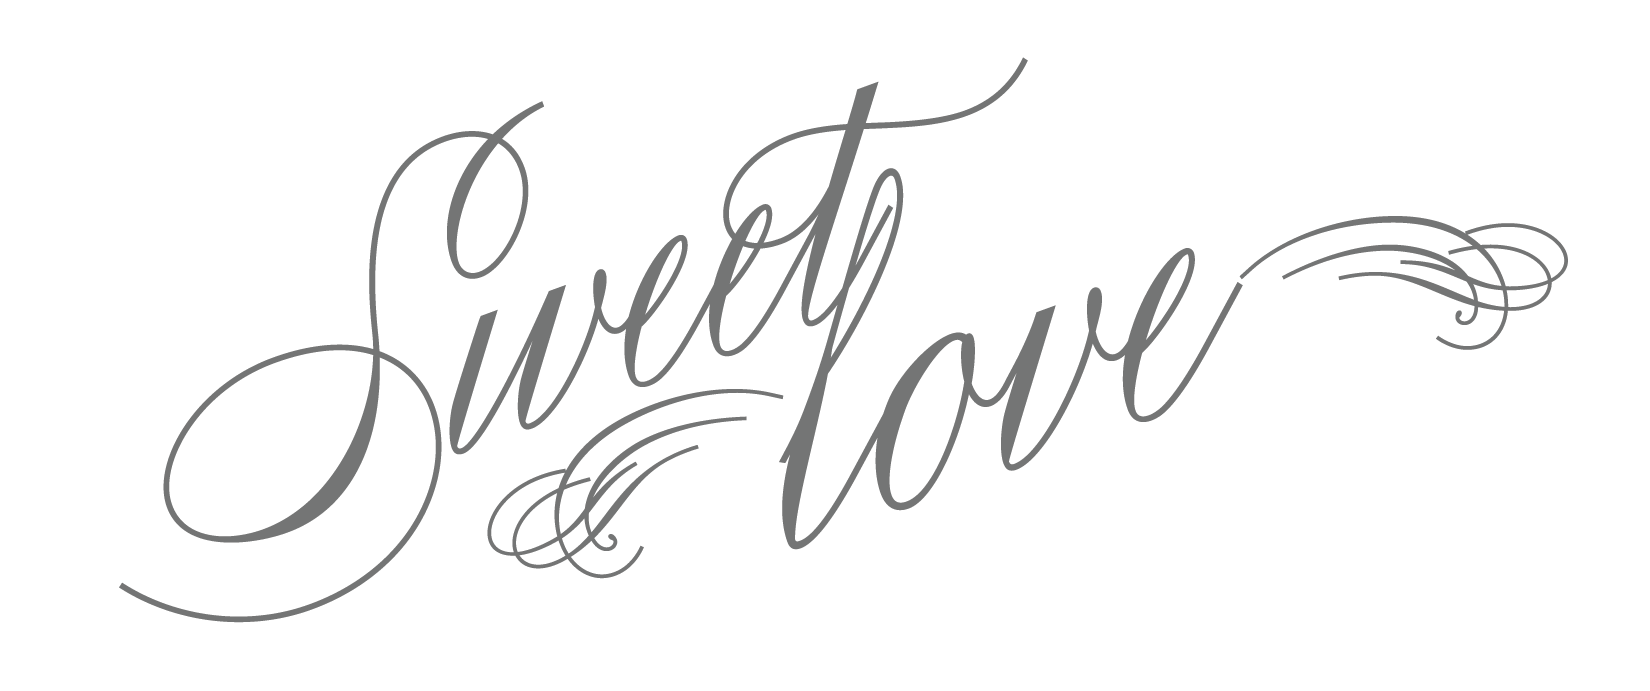 Free calligraphy script wedding fonts images